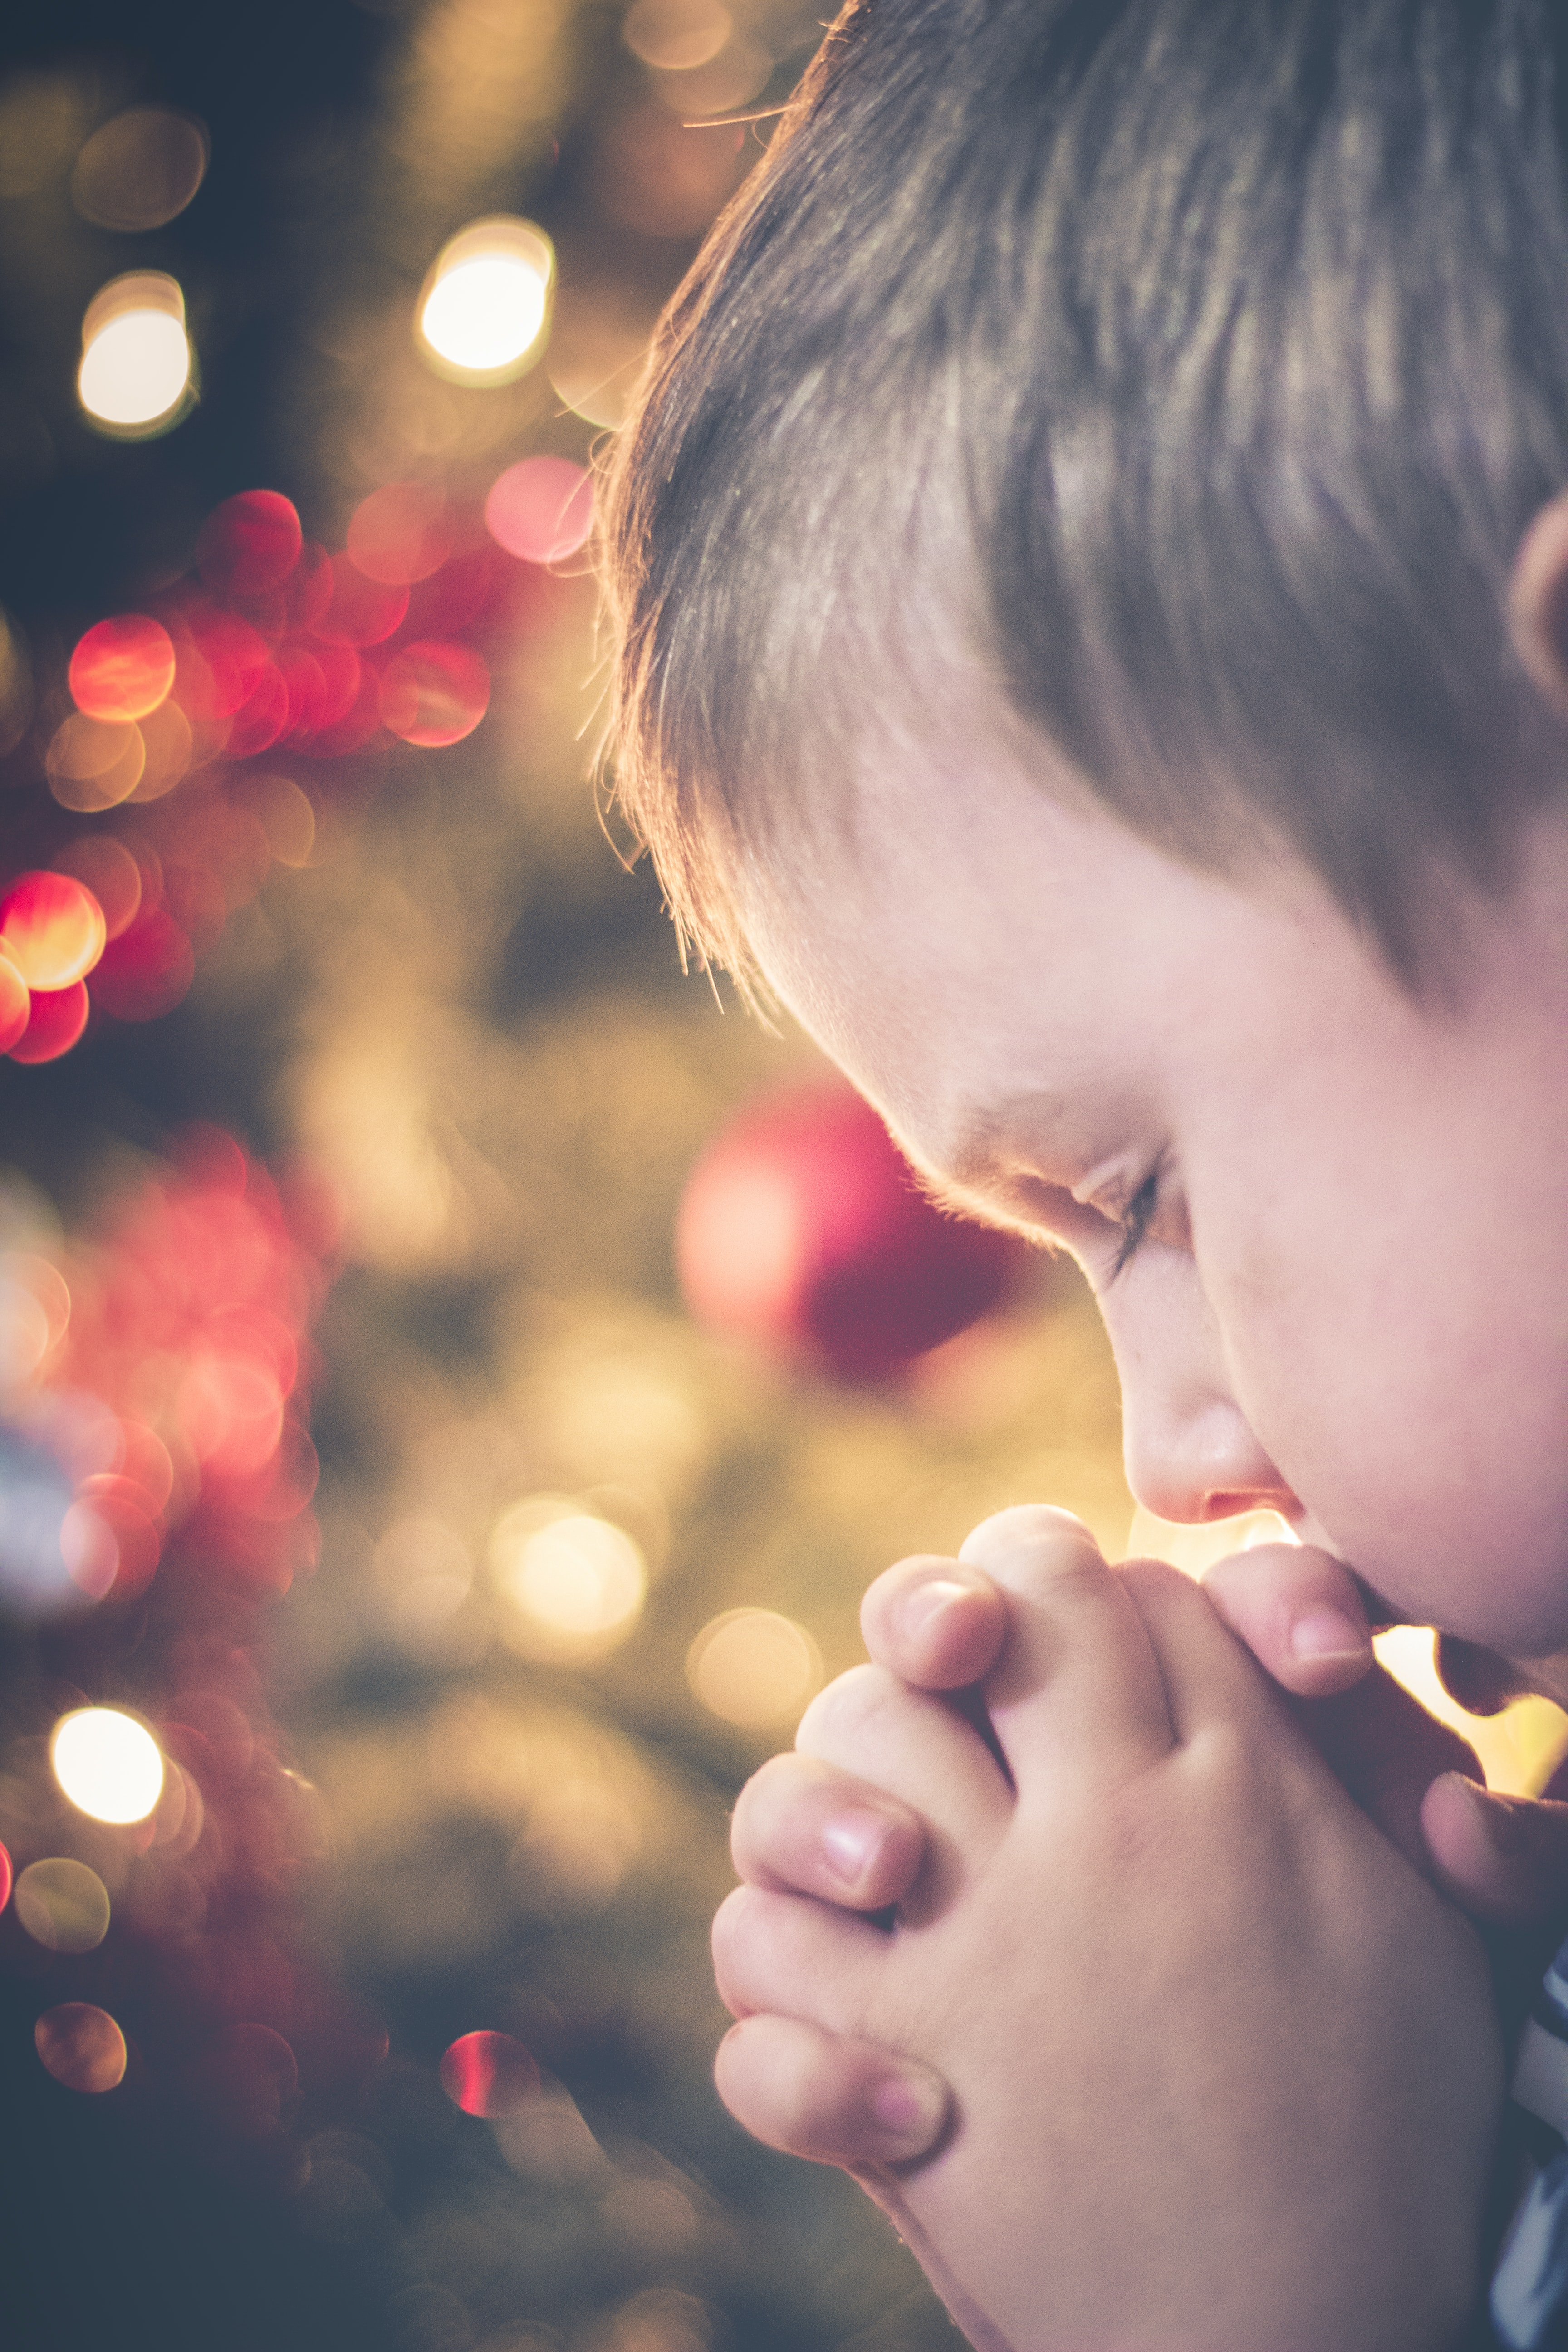 A little boy praying in front of a Christmas tree.